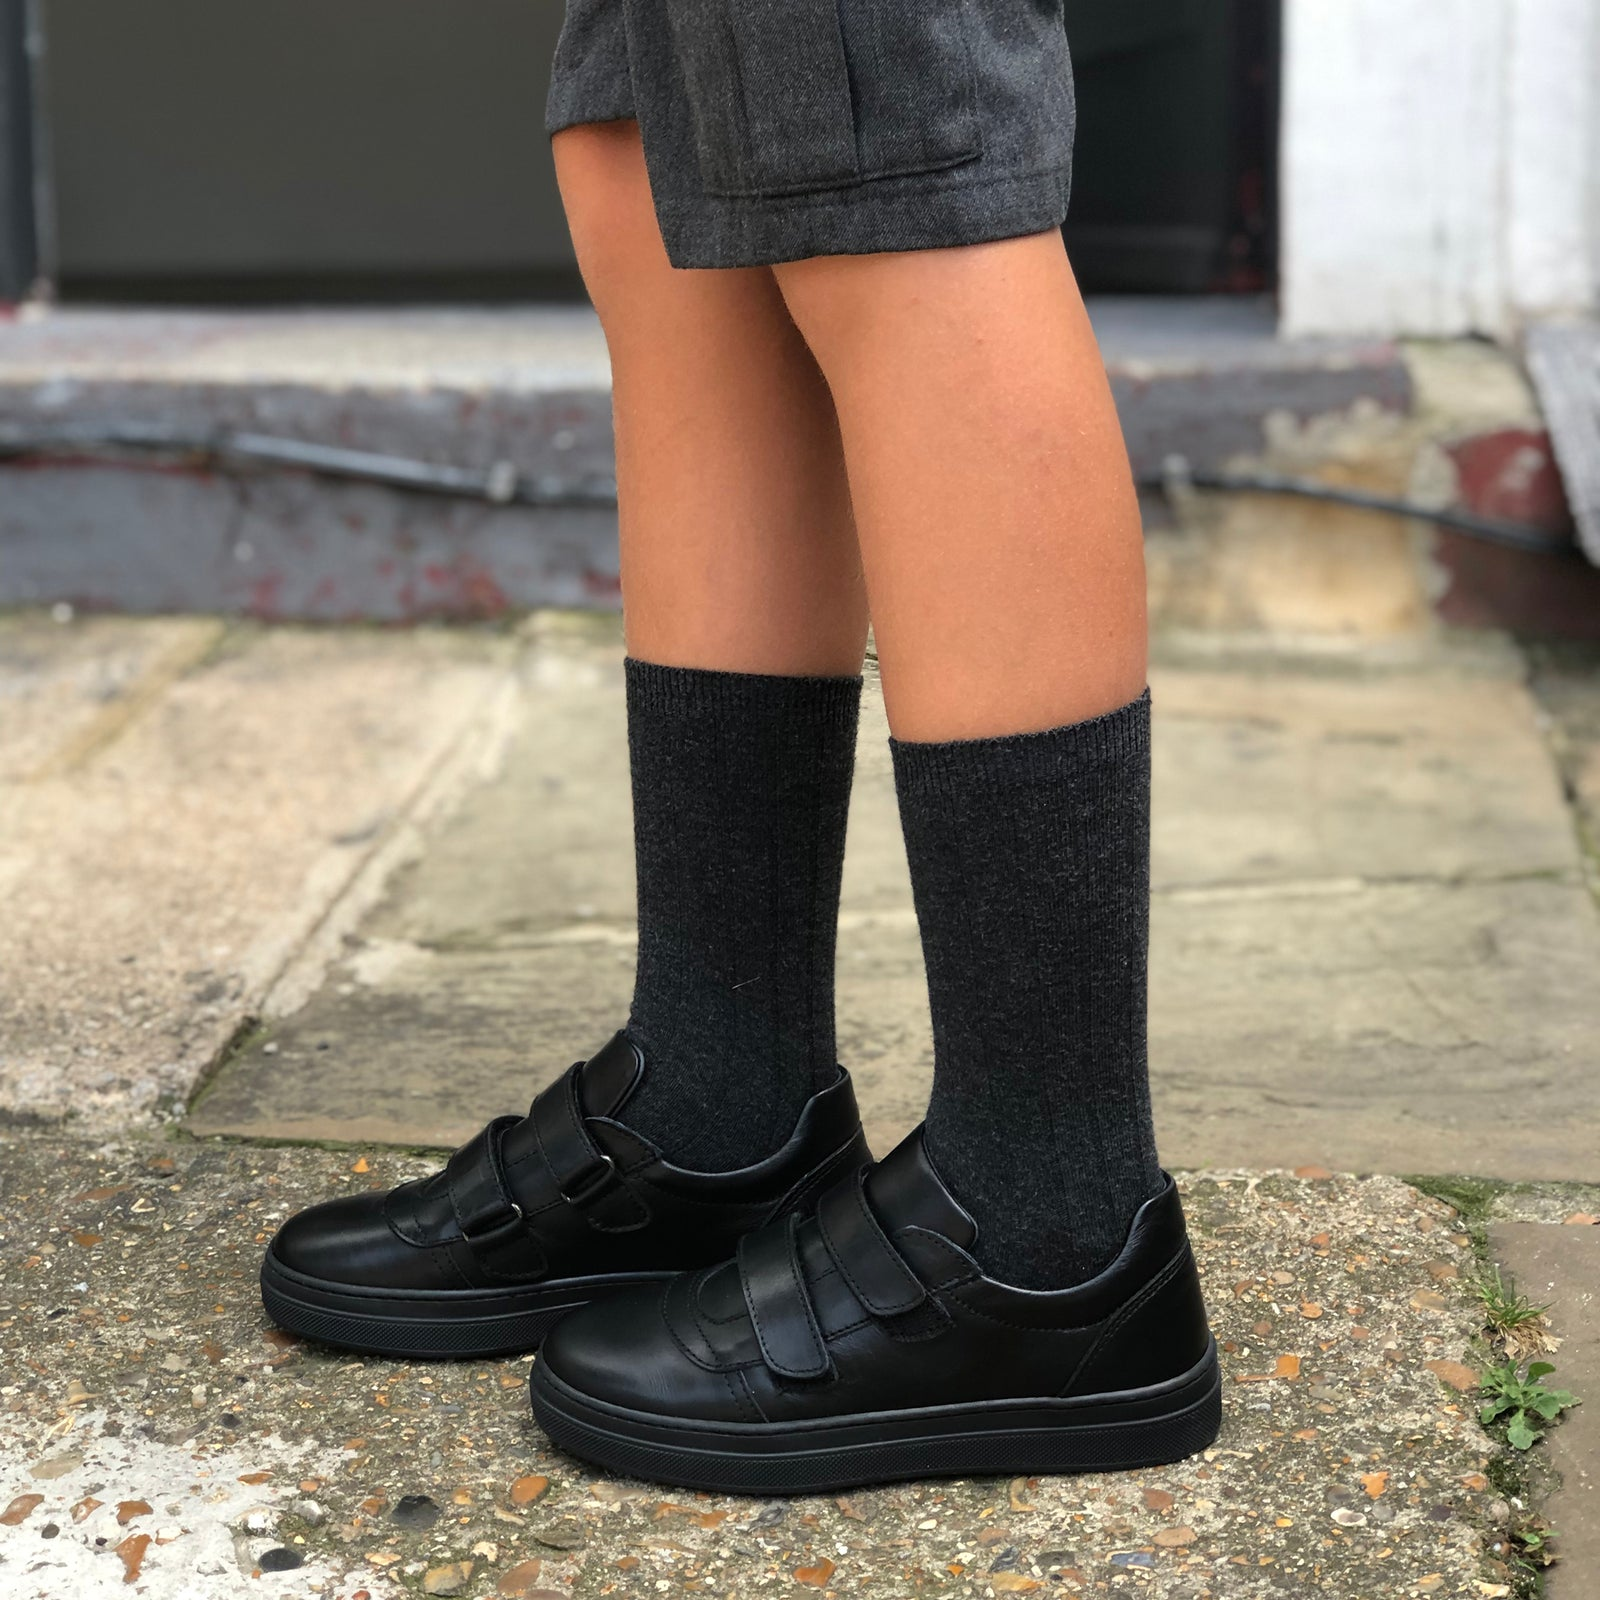 Arthur School Shoes Black